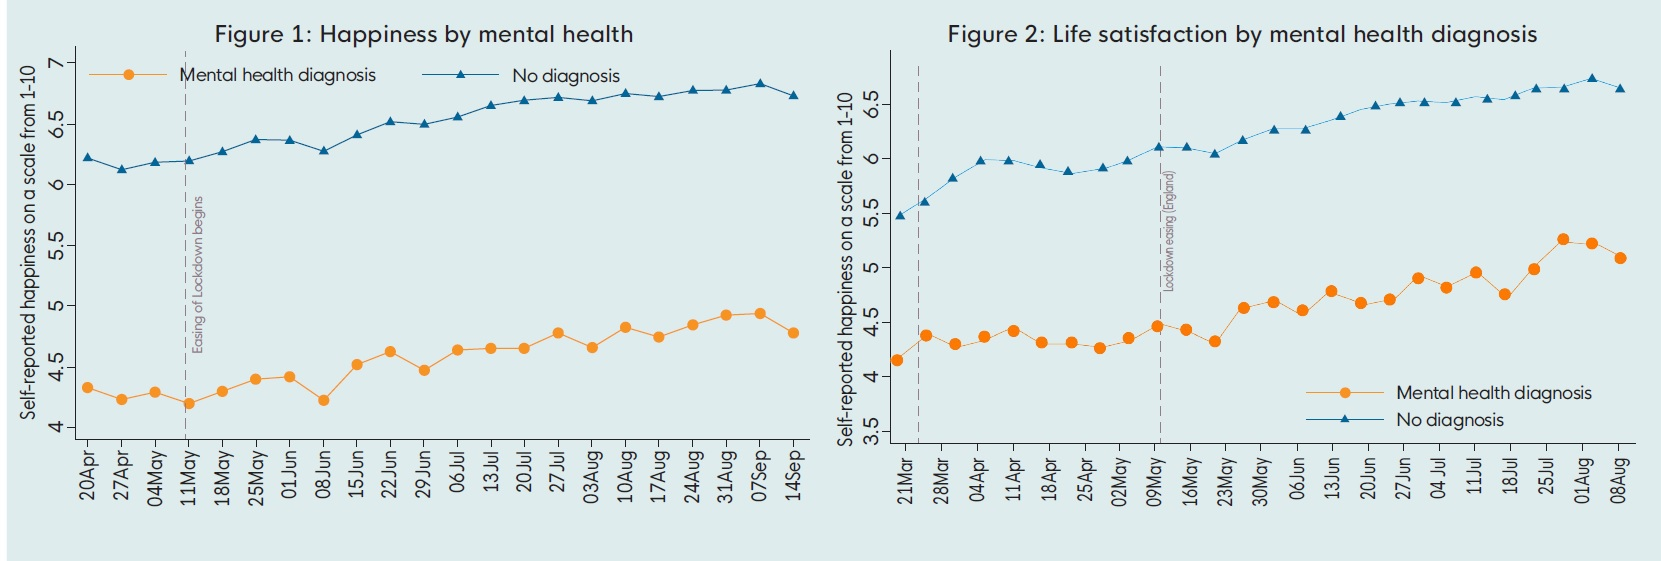 mental health and happiness and life satisfaction recovering from a drop in March